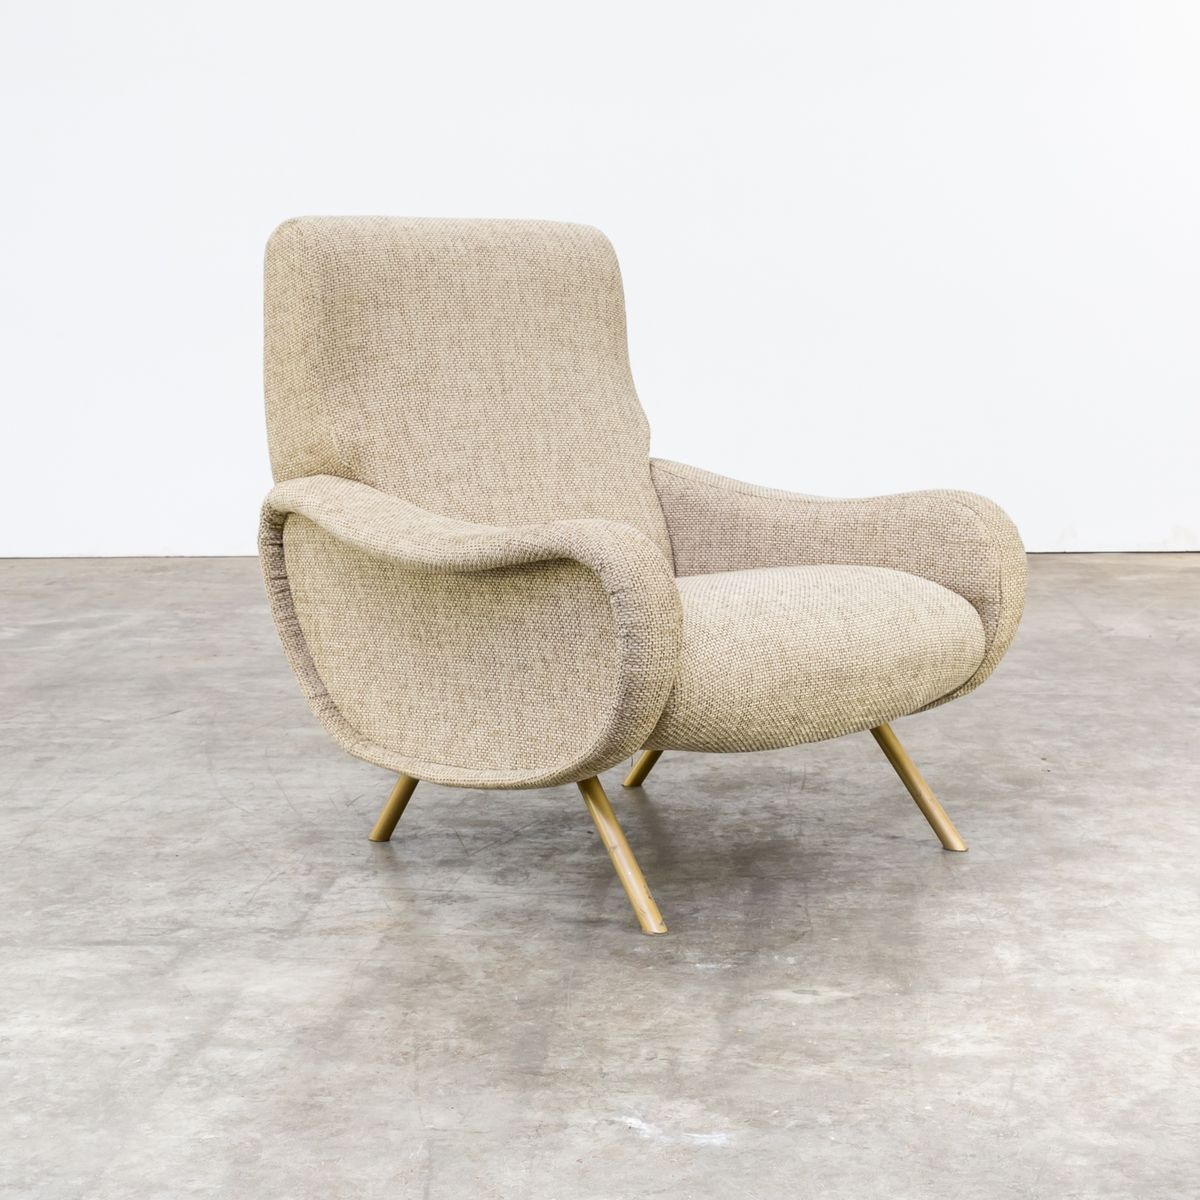 Lady Armchair by Marco Zanuso for Arflex, 1950s for sale at Pamono